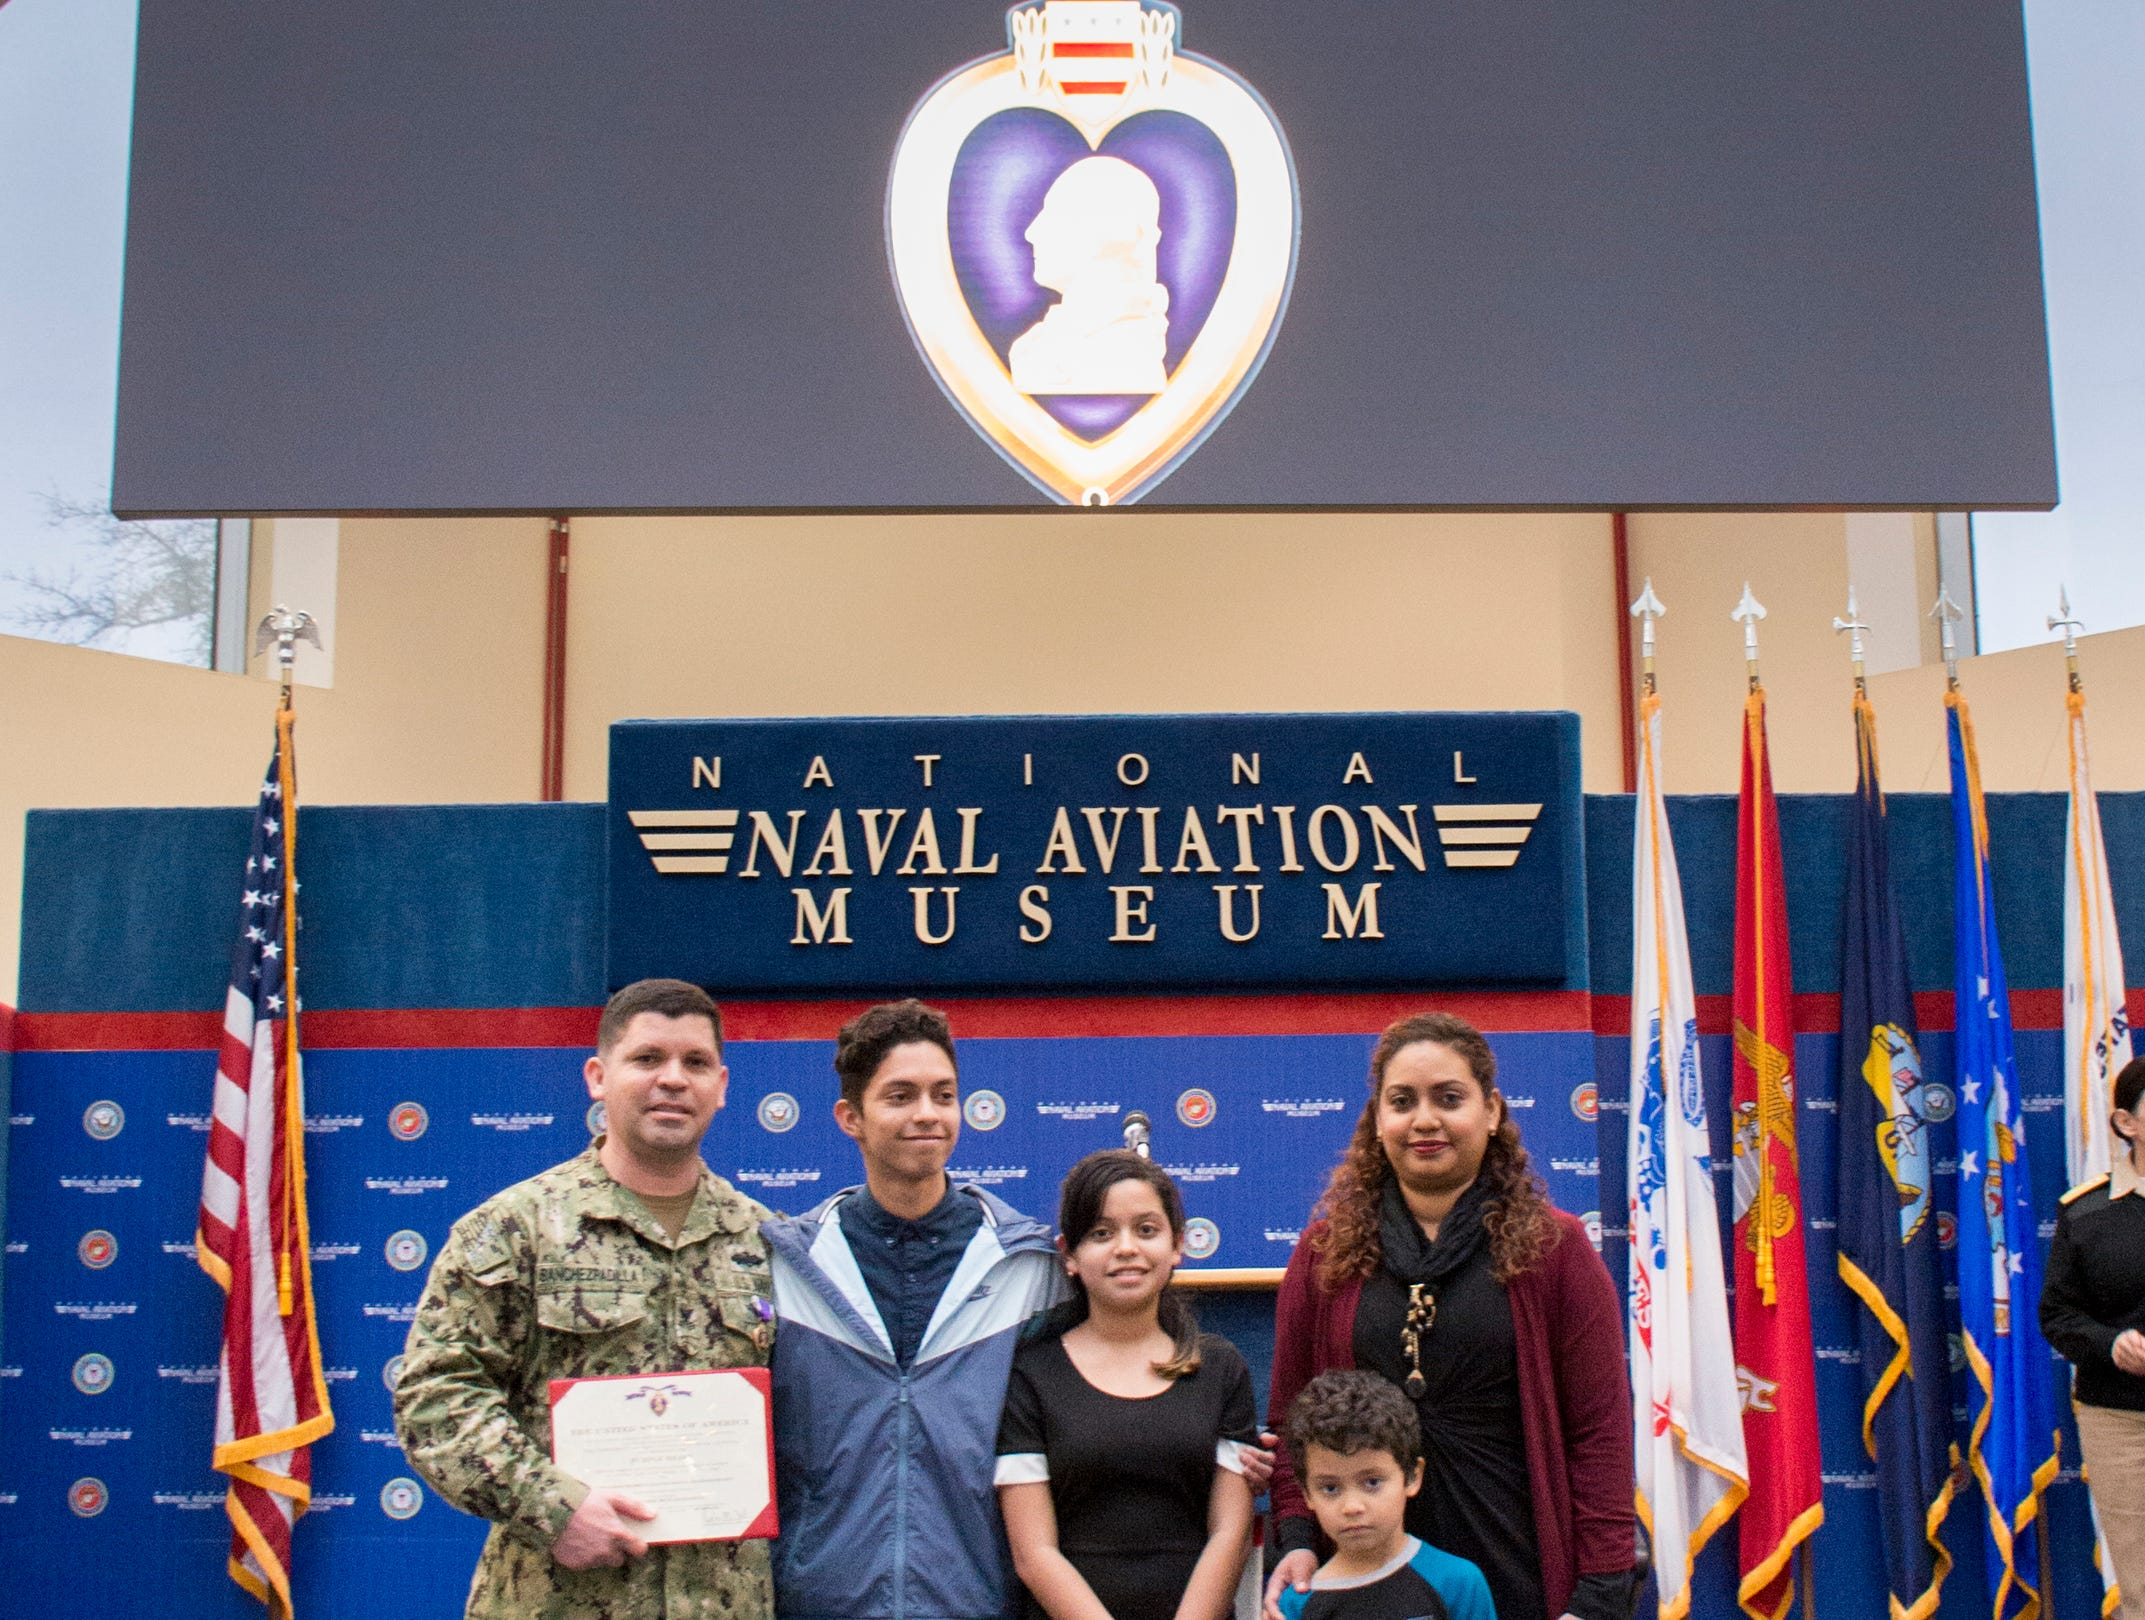 Navy Hospital Corpsman 1st Class Eduardo Sanchez-Padilla, left, poses with his family after  being awarded the Purple Heart during a ceremony at the National Naval Aviation Museum in Pensacola on Wednesday, January 23, 2019.  Sanchez-Padilla was wounded in Afghanistan in 2009.